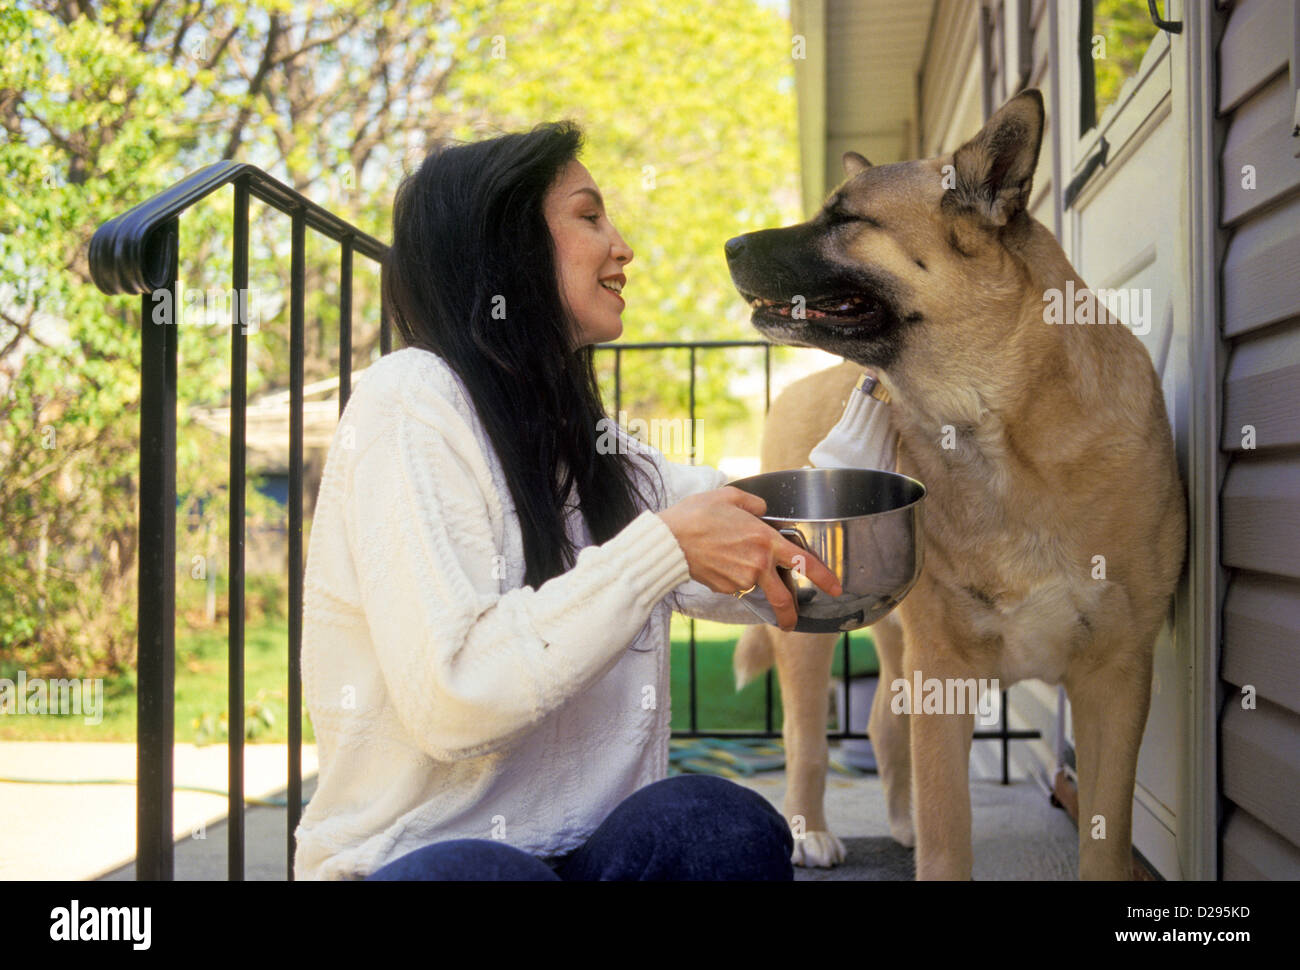 Woman In Her 30S Looking At Her Dog, While Offering Him Water - Stock Image